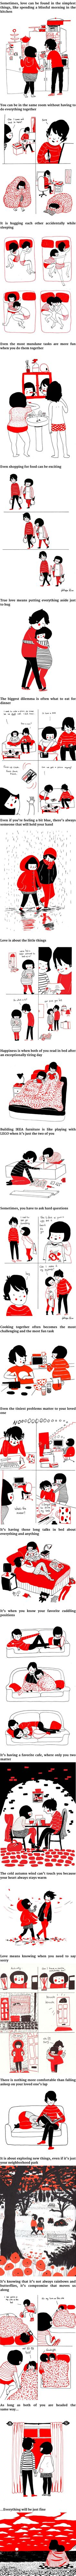 VineScope - Heartwarming Illustrations Show That Love Is In The Small Things